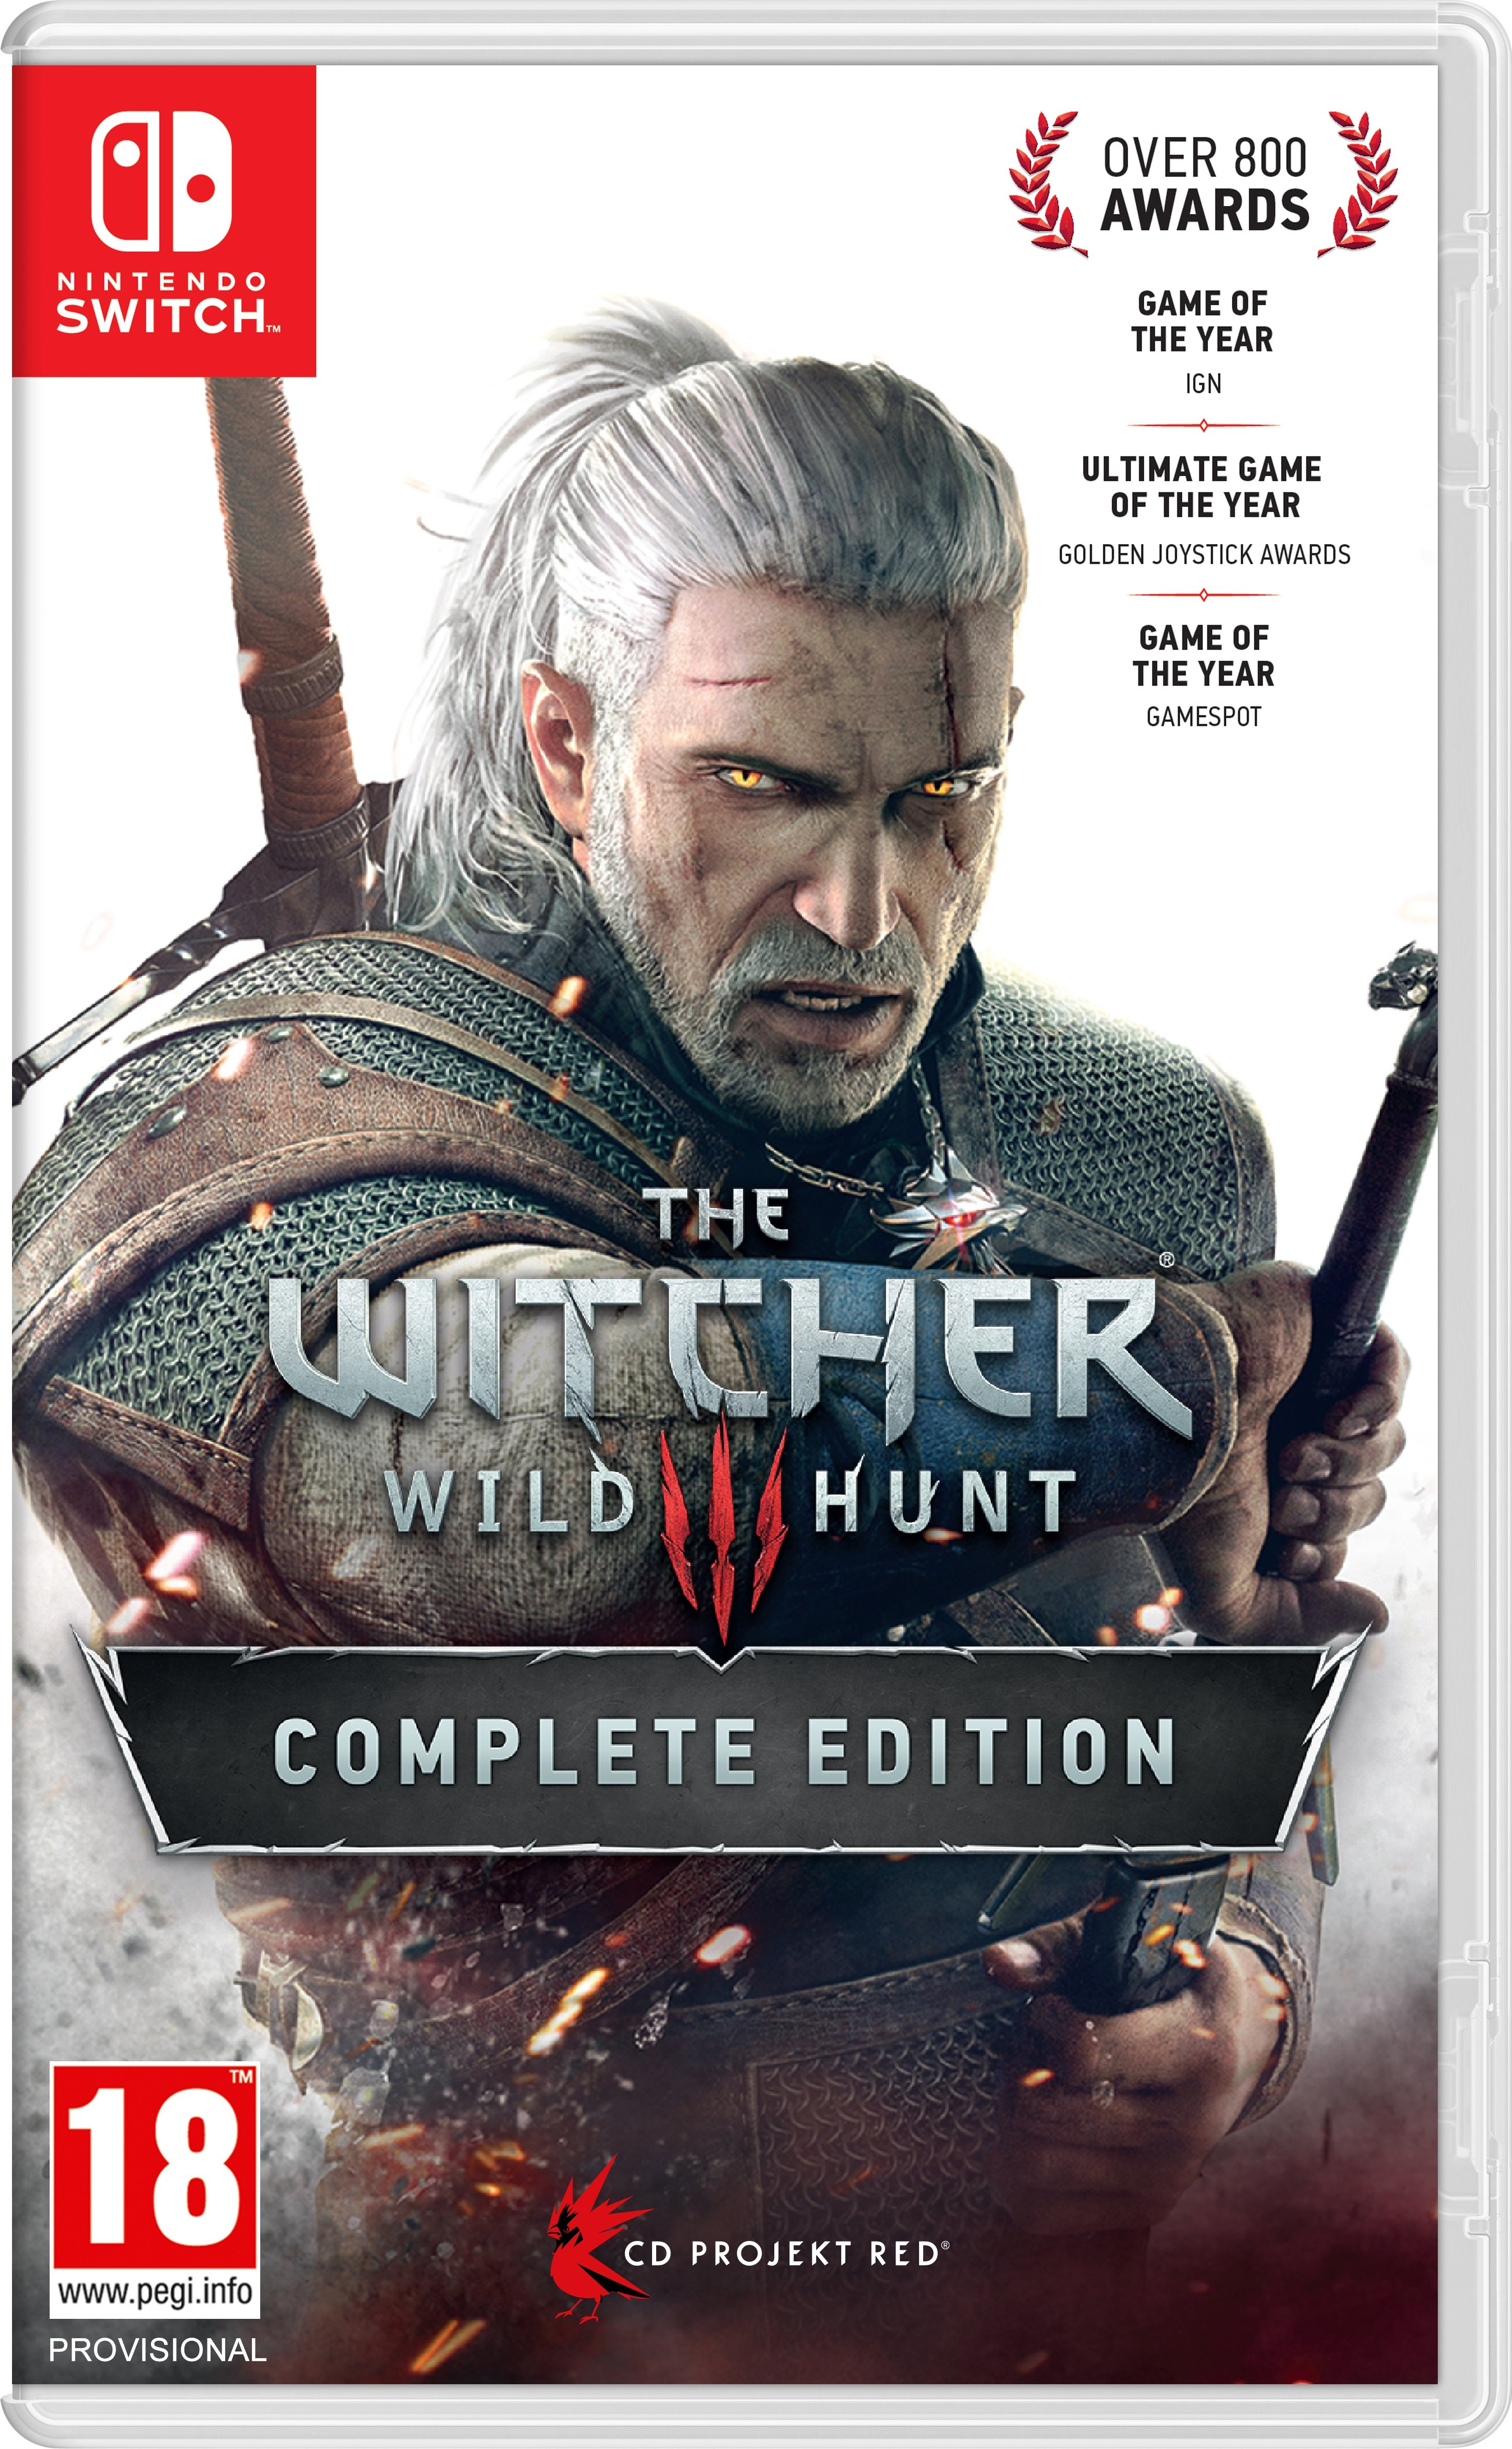 The Witcher 3: Wild Hunt (Complete Edition) Light Edition